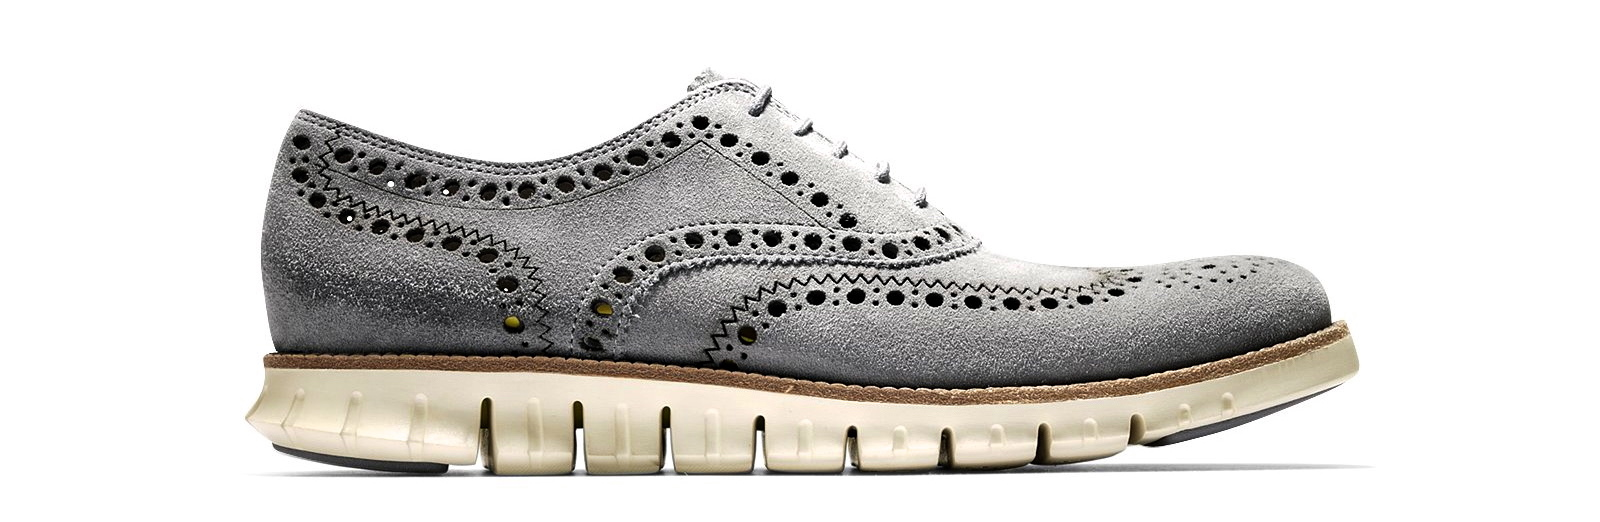 COLE HAAN LAUNCHES FUTURE-FACING ZEROGRAND SHOES ...